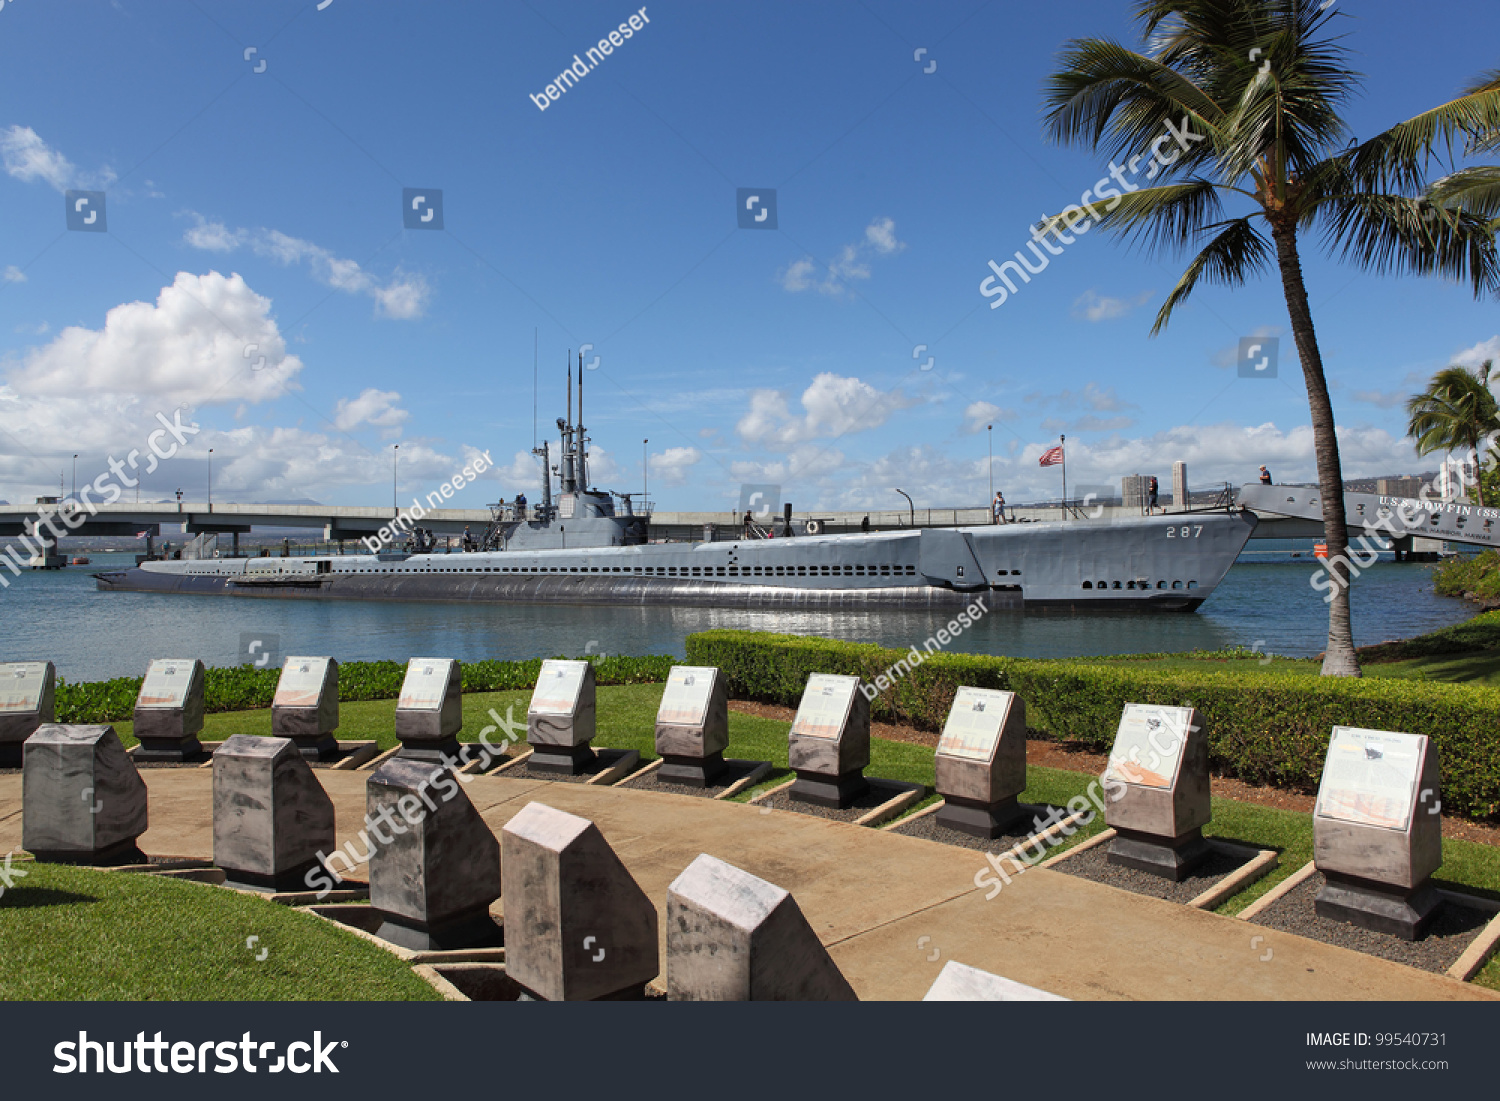 Memorial Pearl Harbor Submarine Uss Bowfin Stock Photo ...